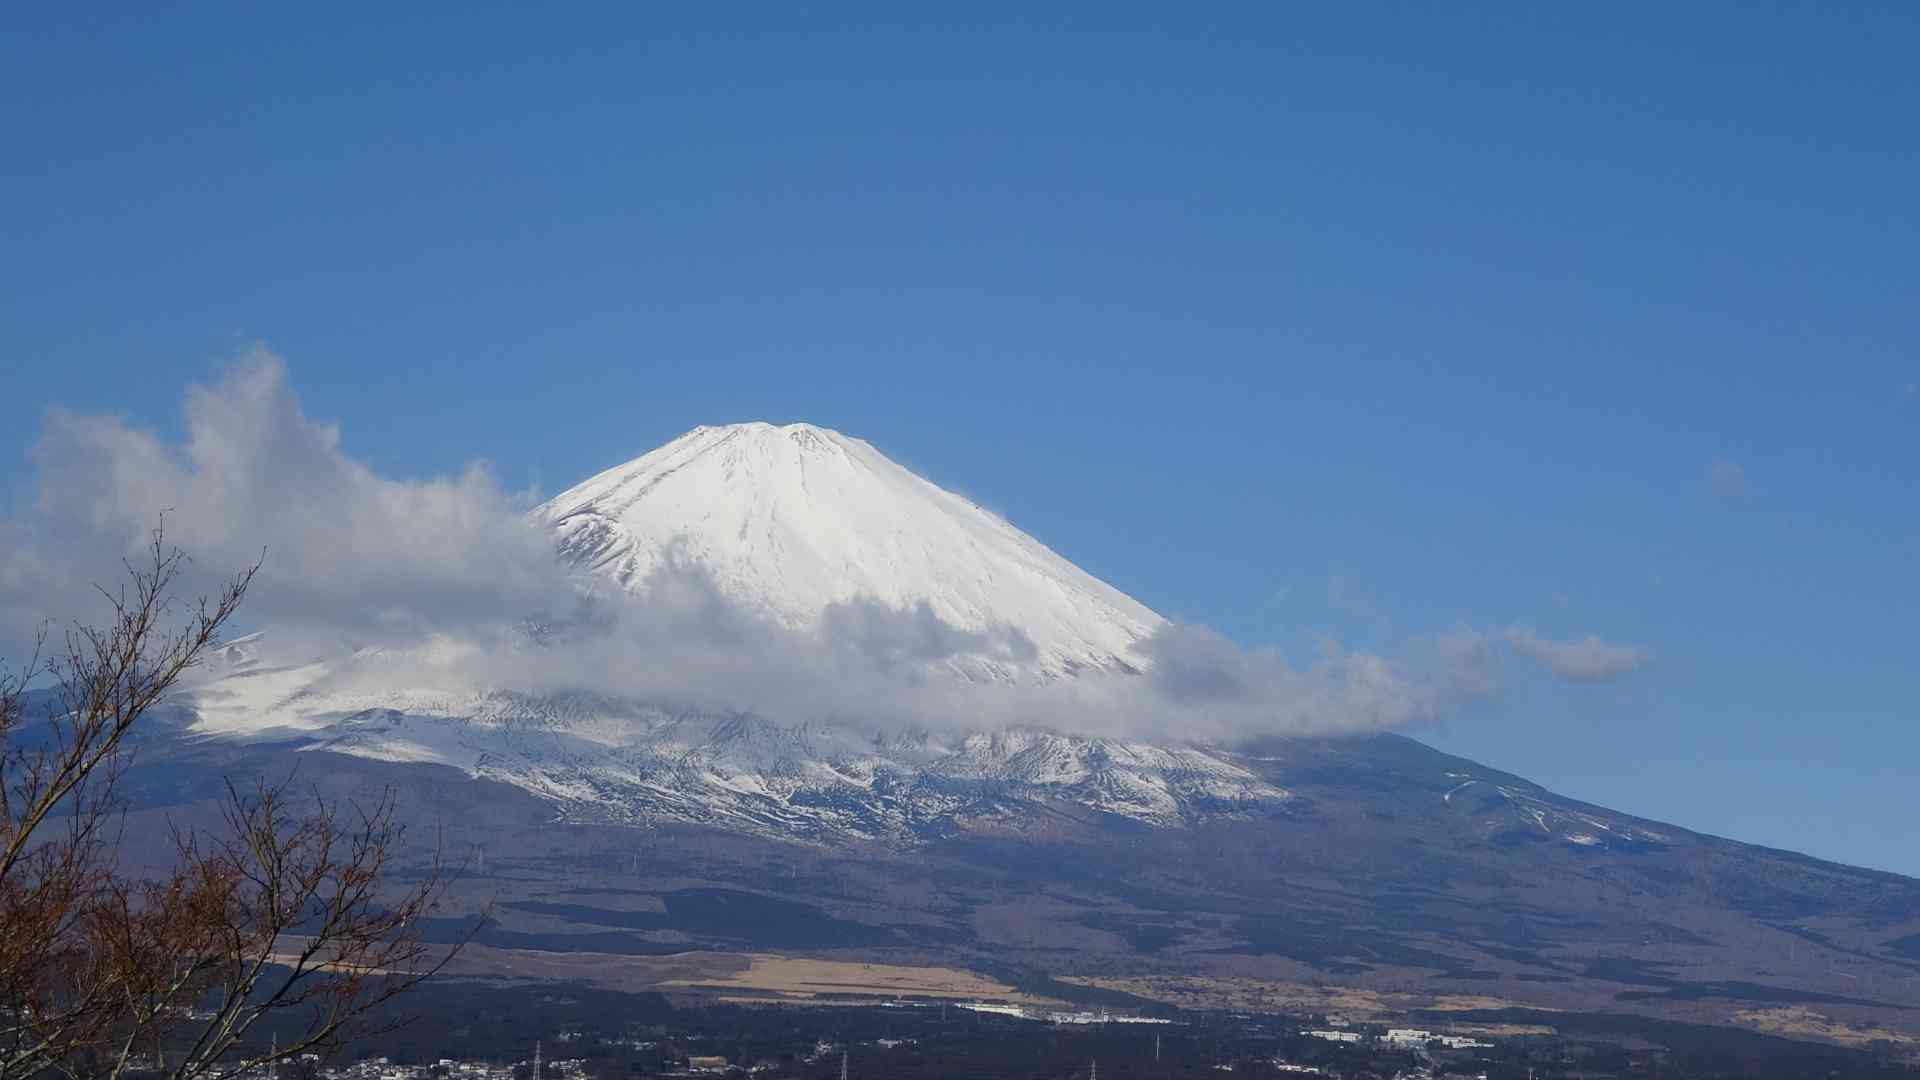 Mt Fuji, Japan by Dennis Bunnik